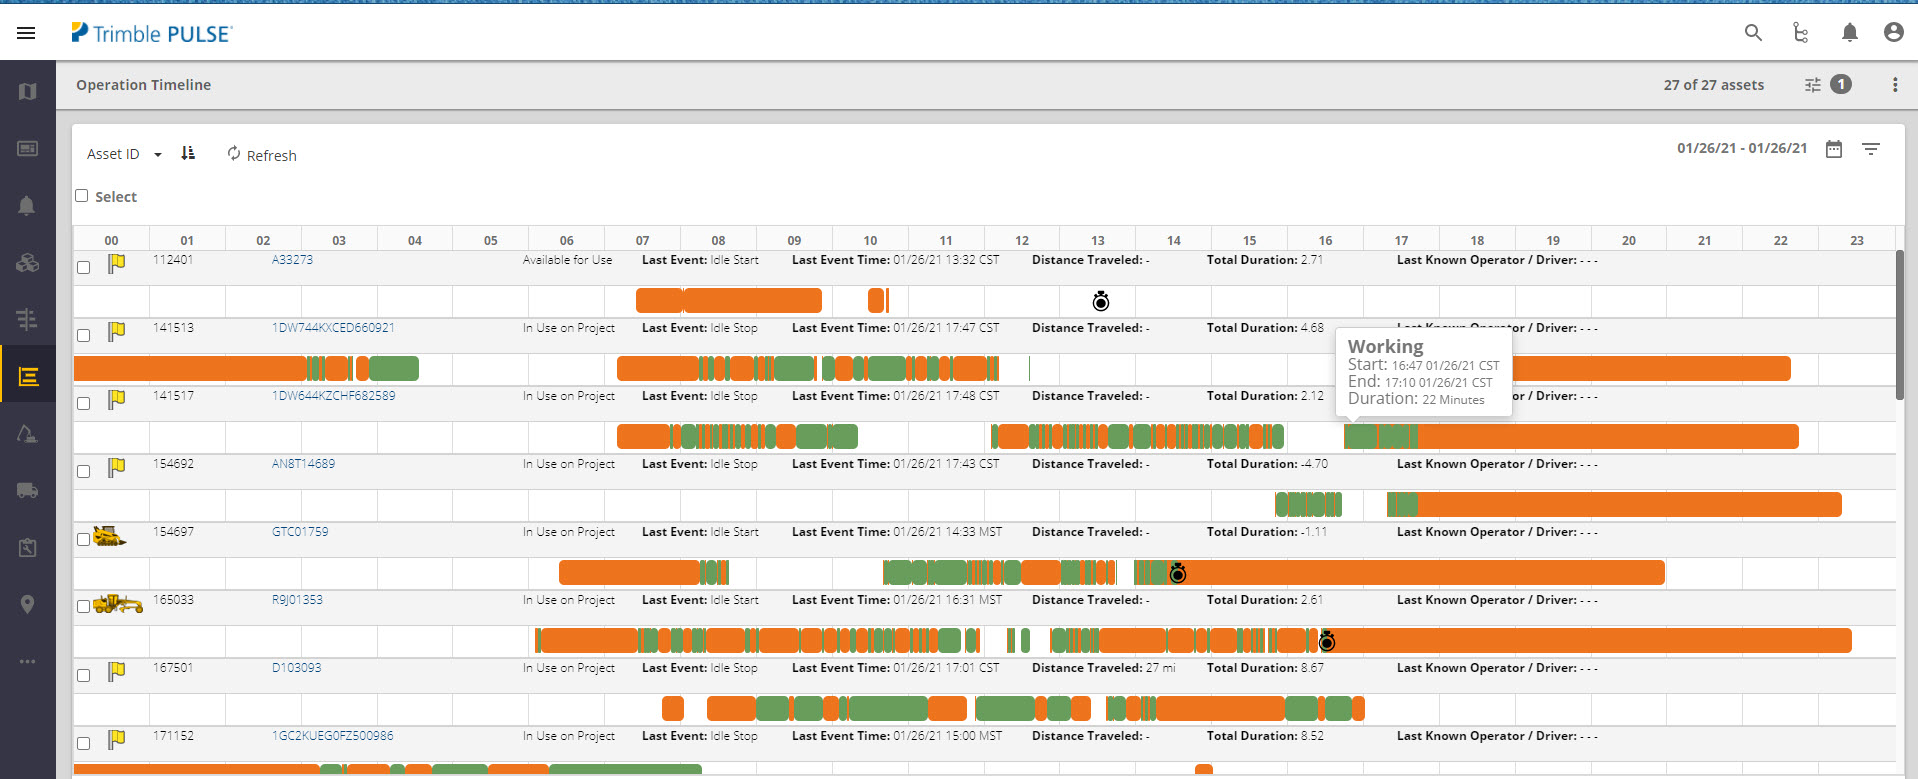 Trimble-PULSE-asset-operation-timeline-dashboard